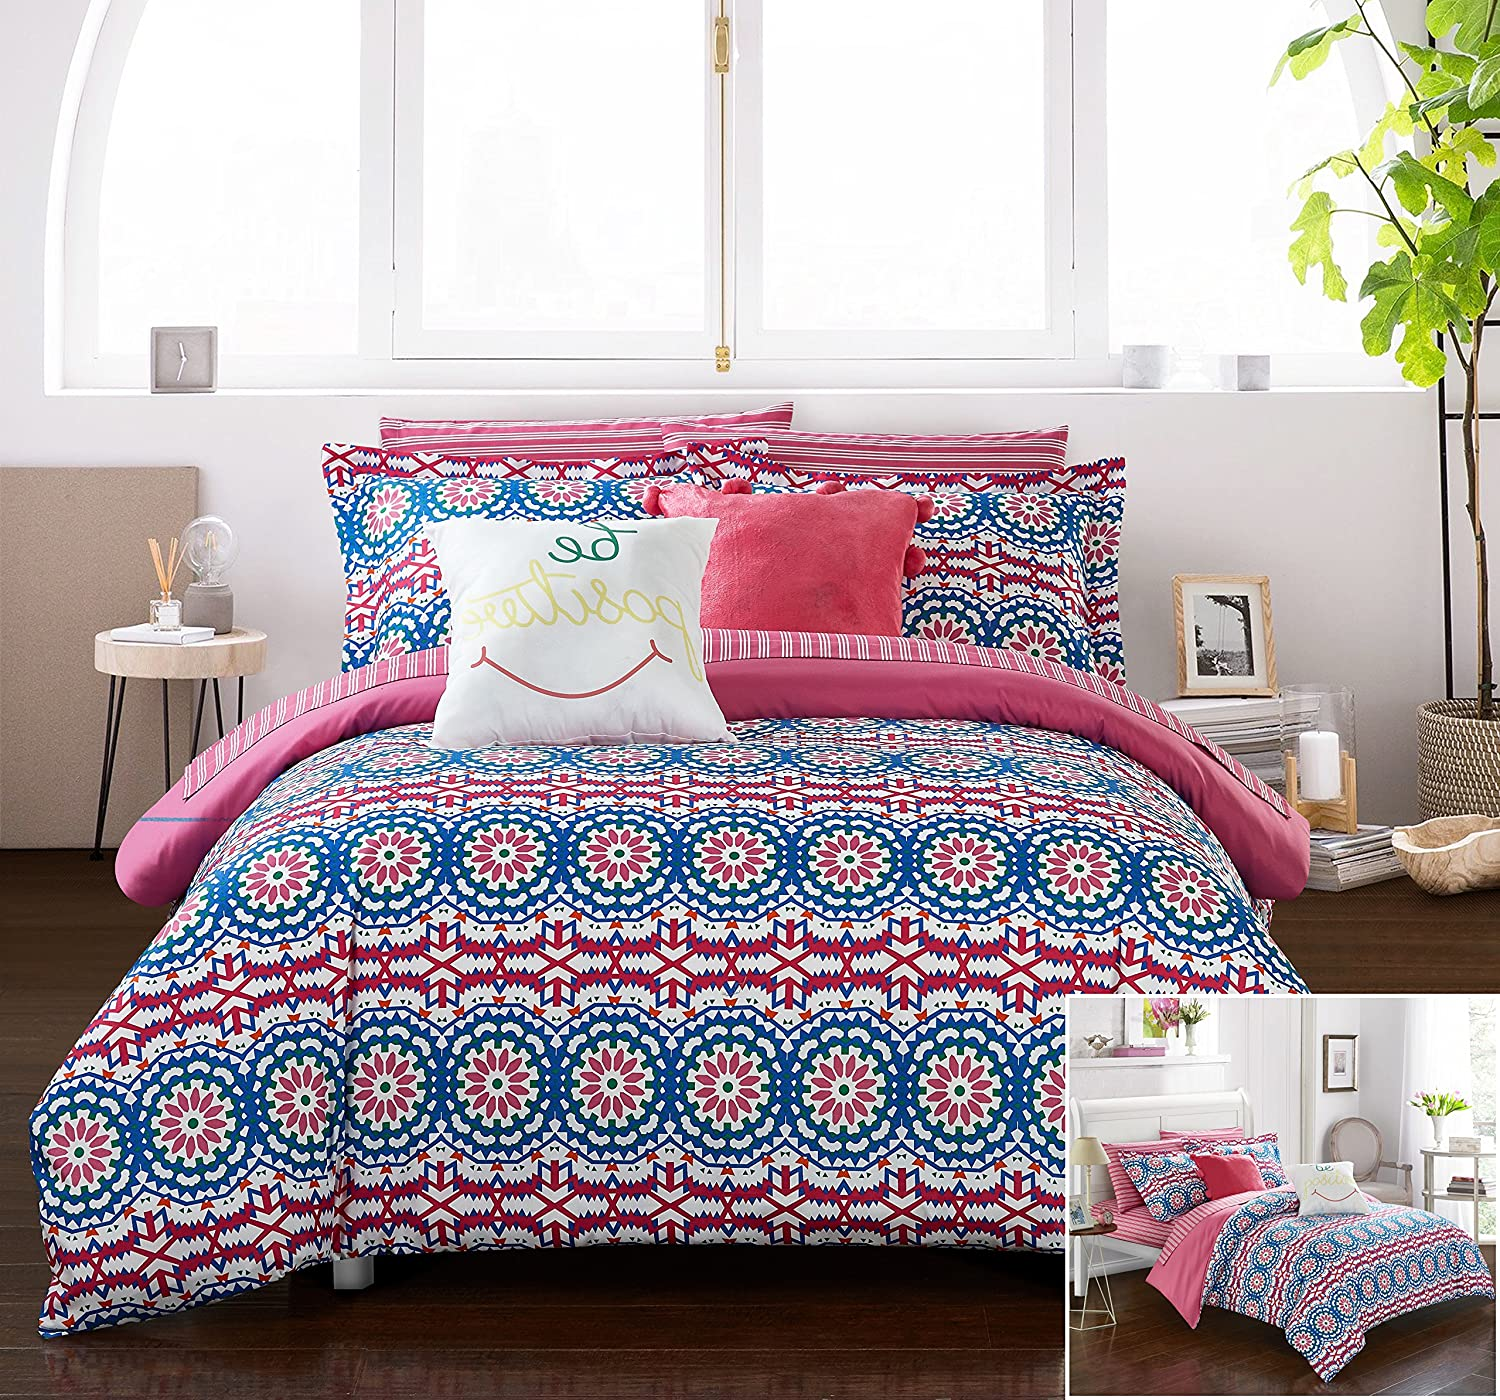 Chic Home 9 Piece Vedasto Reversible Contemporary Floral Bohemian Printed with Stripe Reversible Bed in a Bag, Luxury Pillows and sheetts Set Included. Full Comforter Set Fuschia